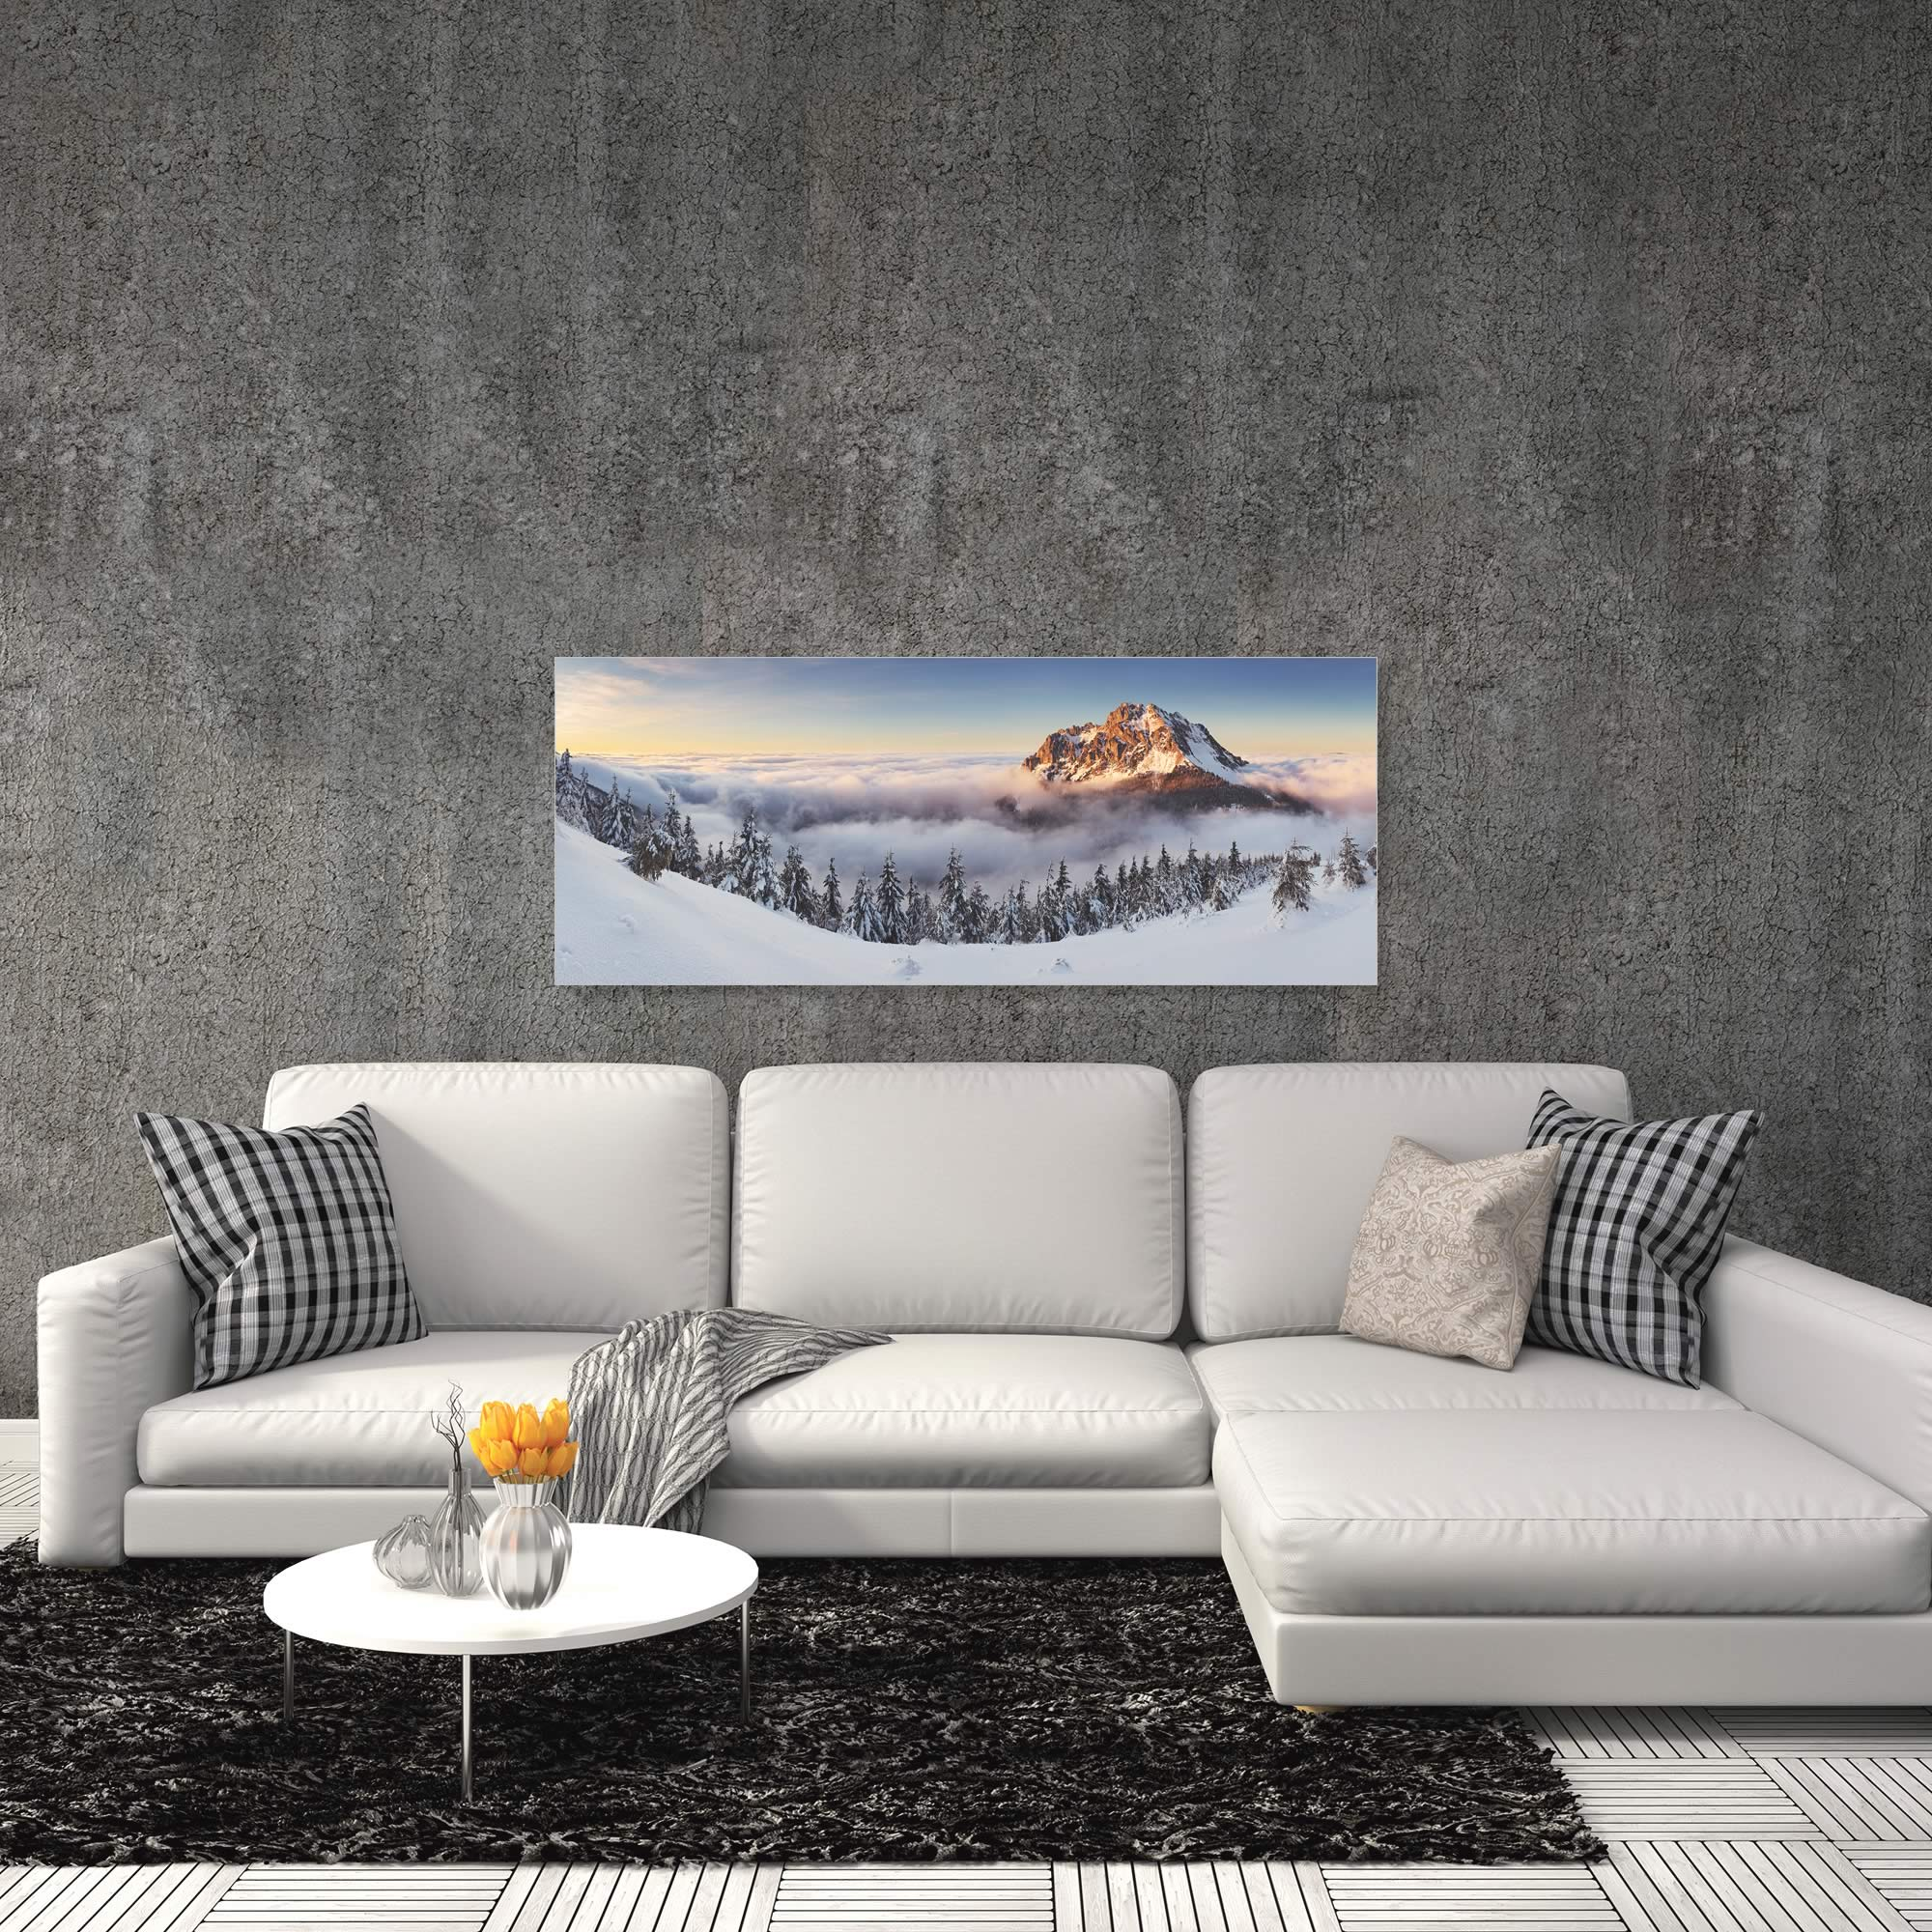 Golden Peak by Tomas Sereda - Snowy Mountains Art on Metal or Acrylic - Alternate View 1